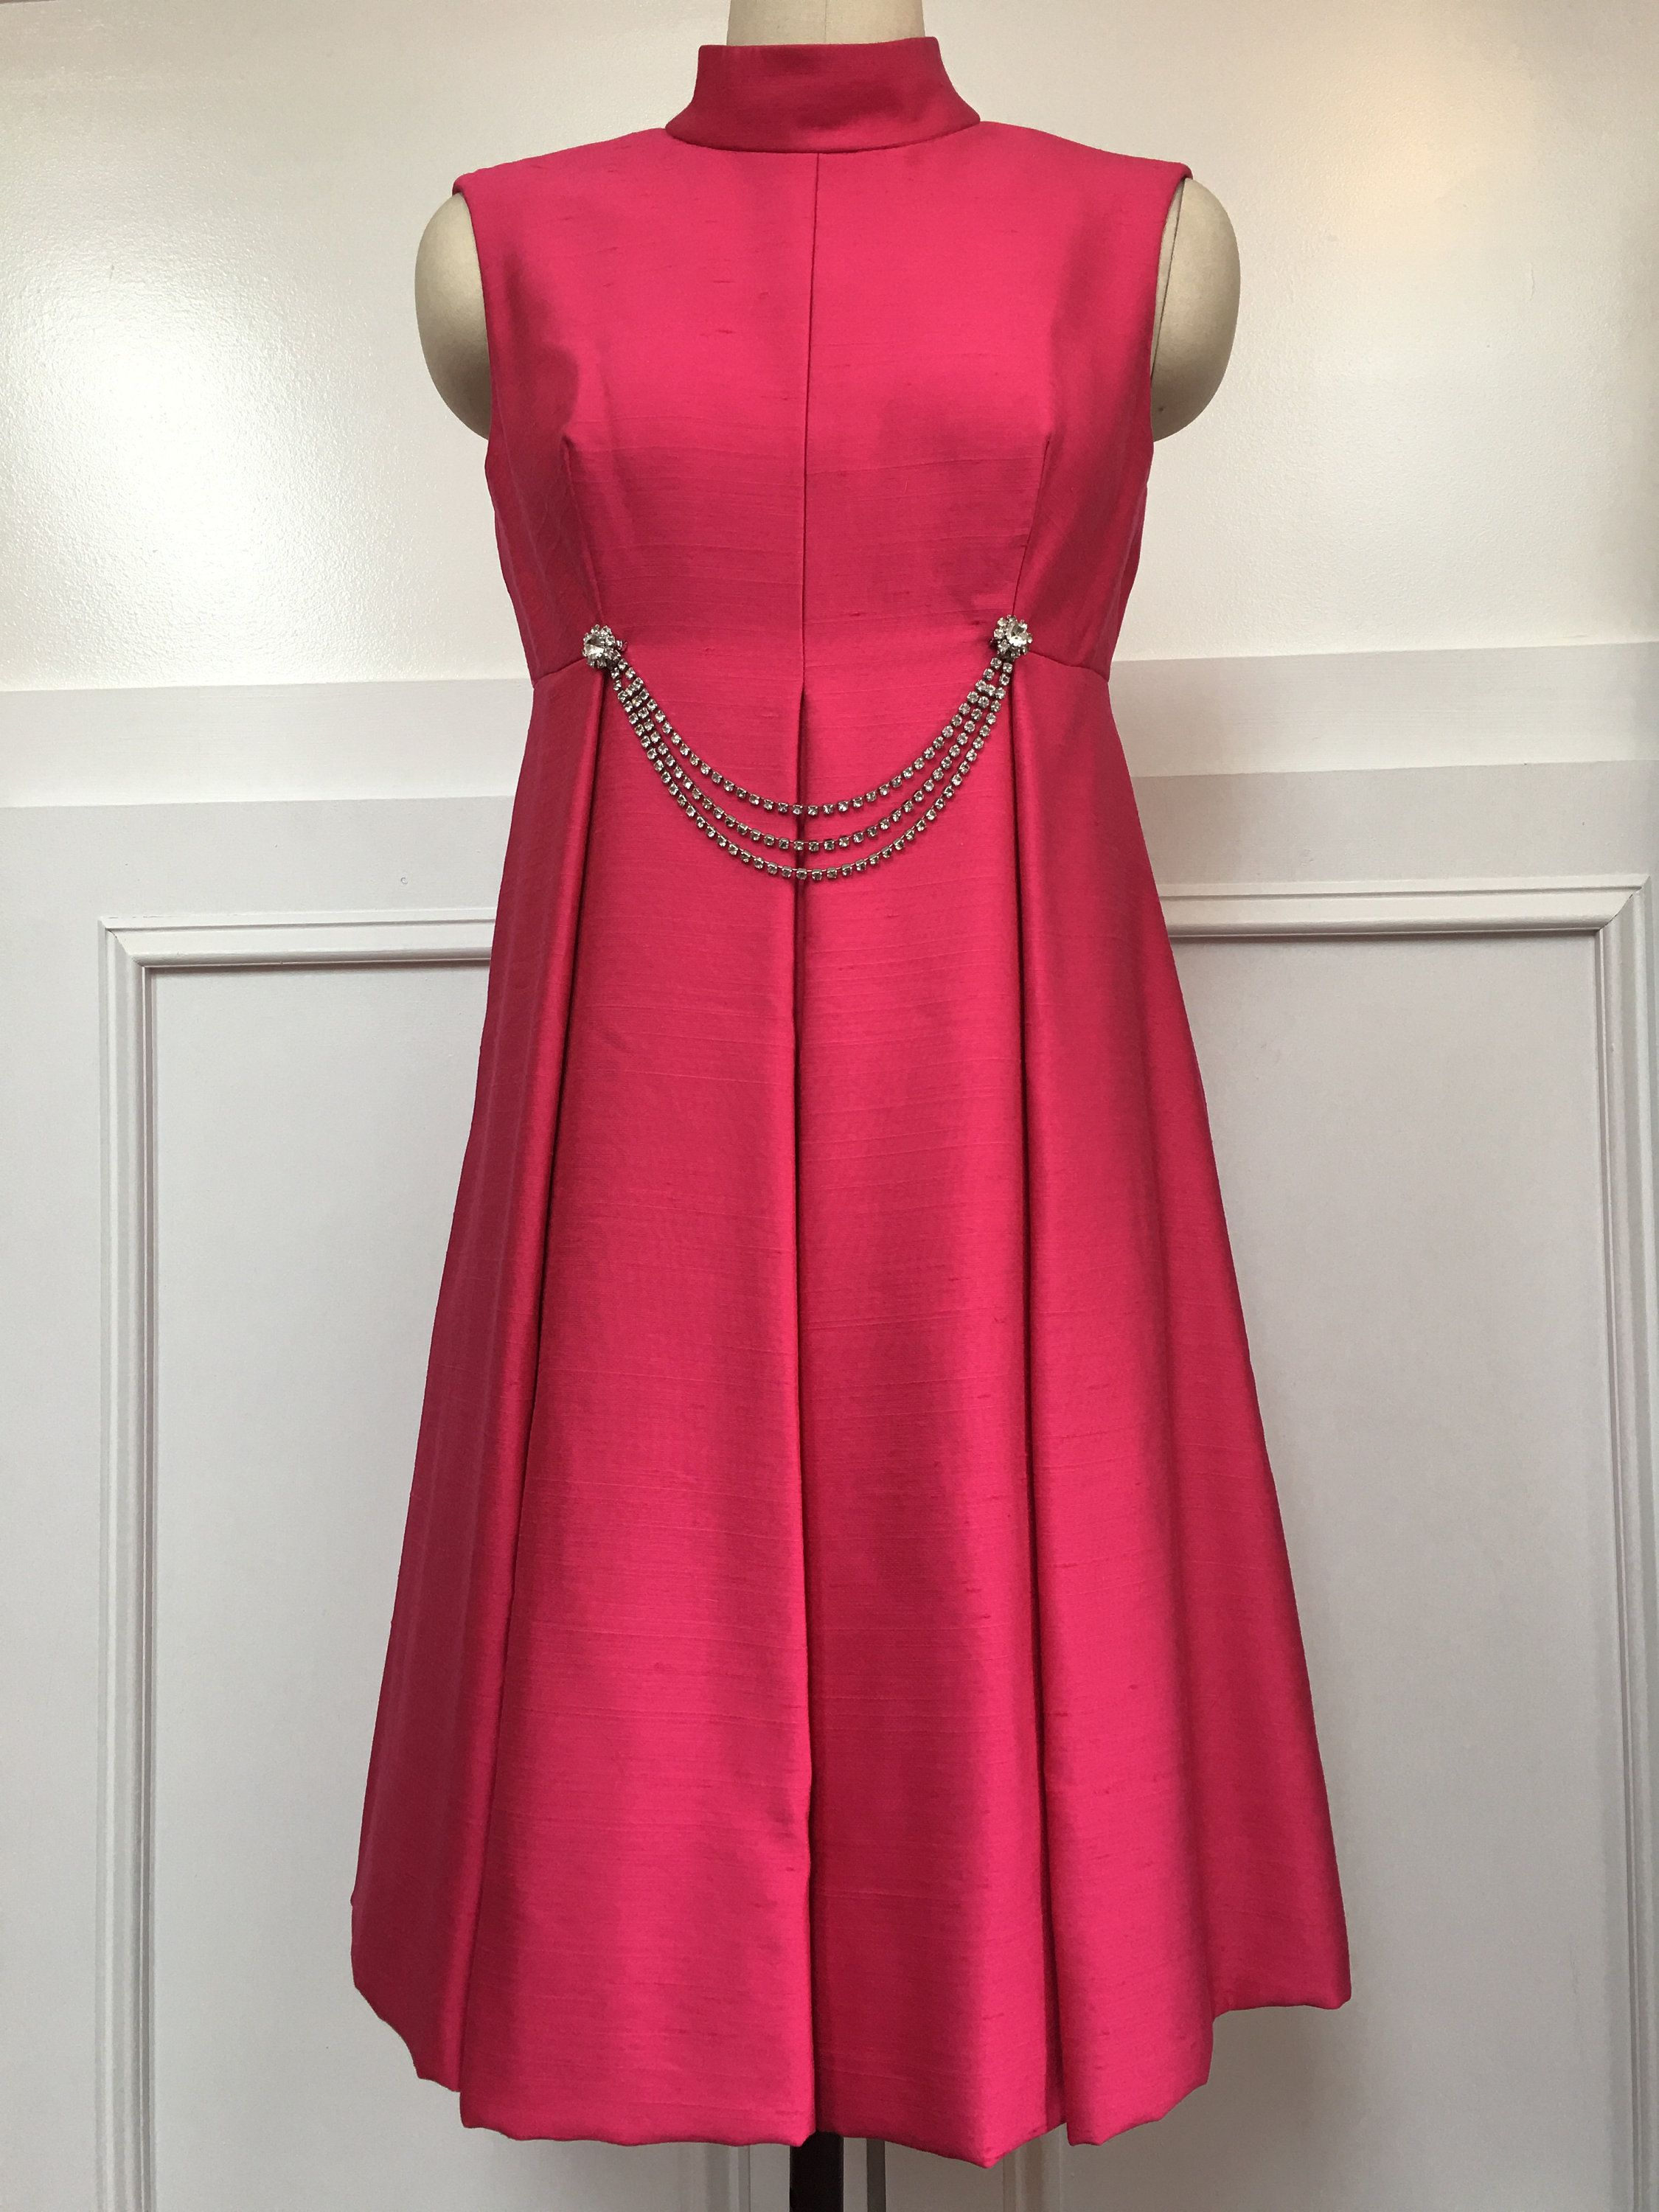 S mod shocking pink cocktail dress with rhinestone detailing